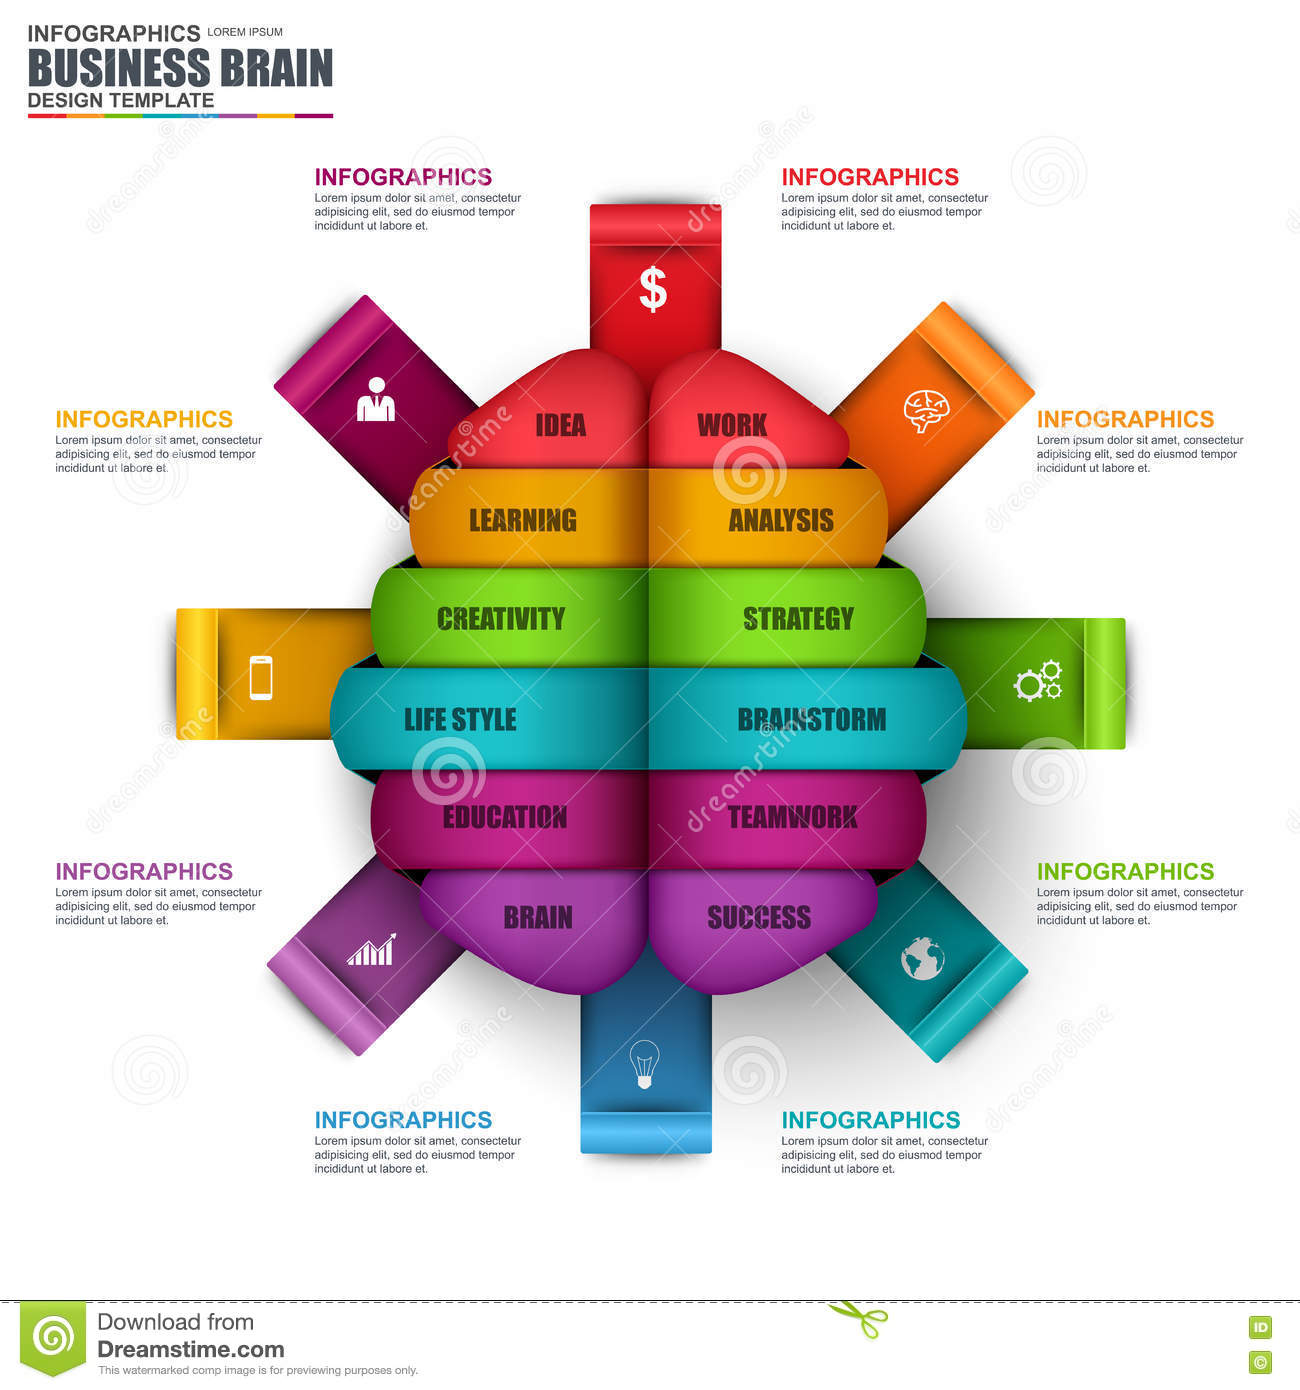 infographic business brain vector design template stock